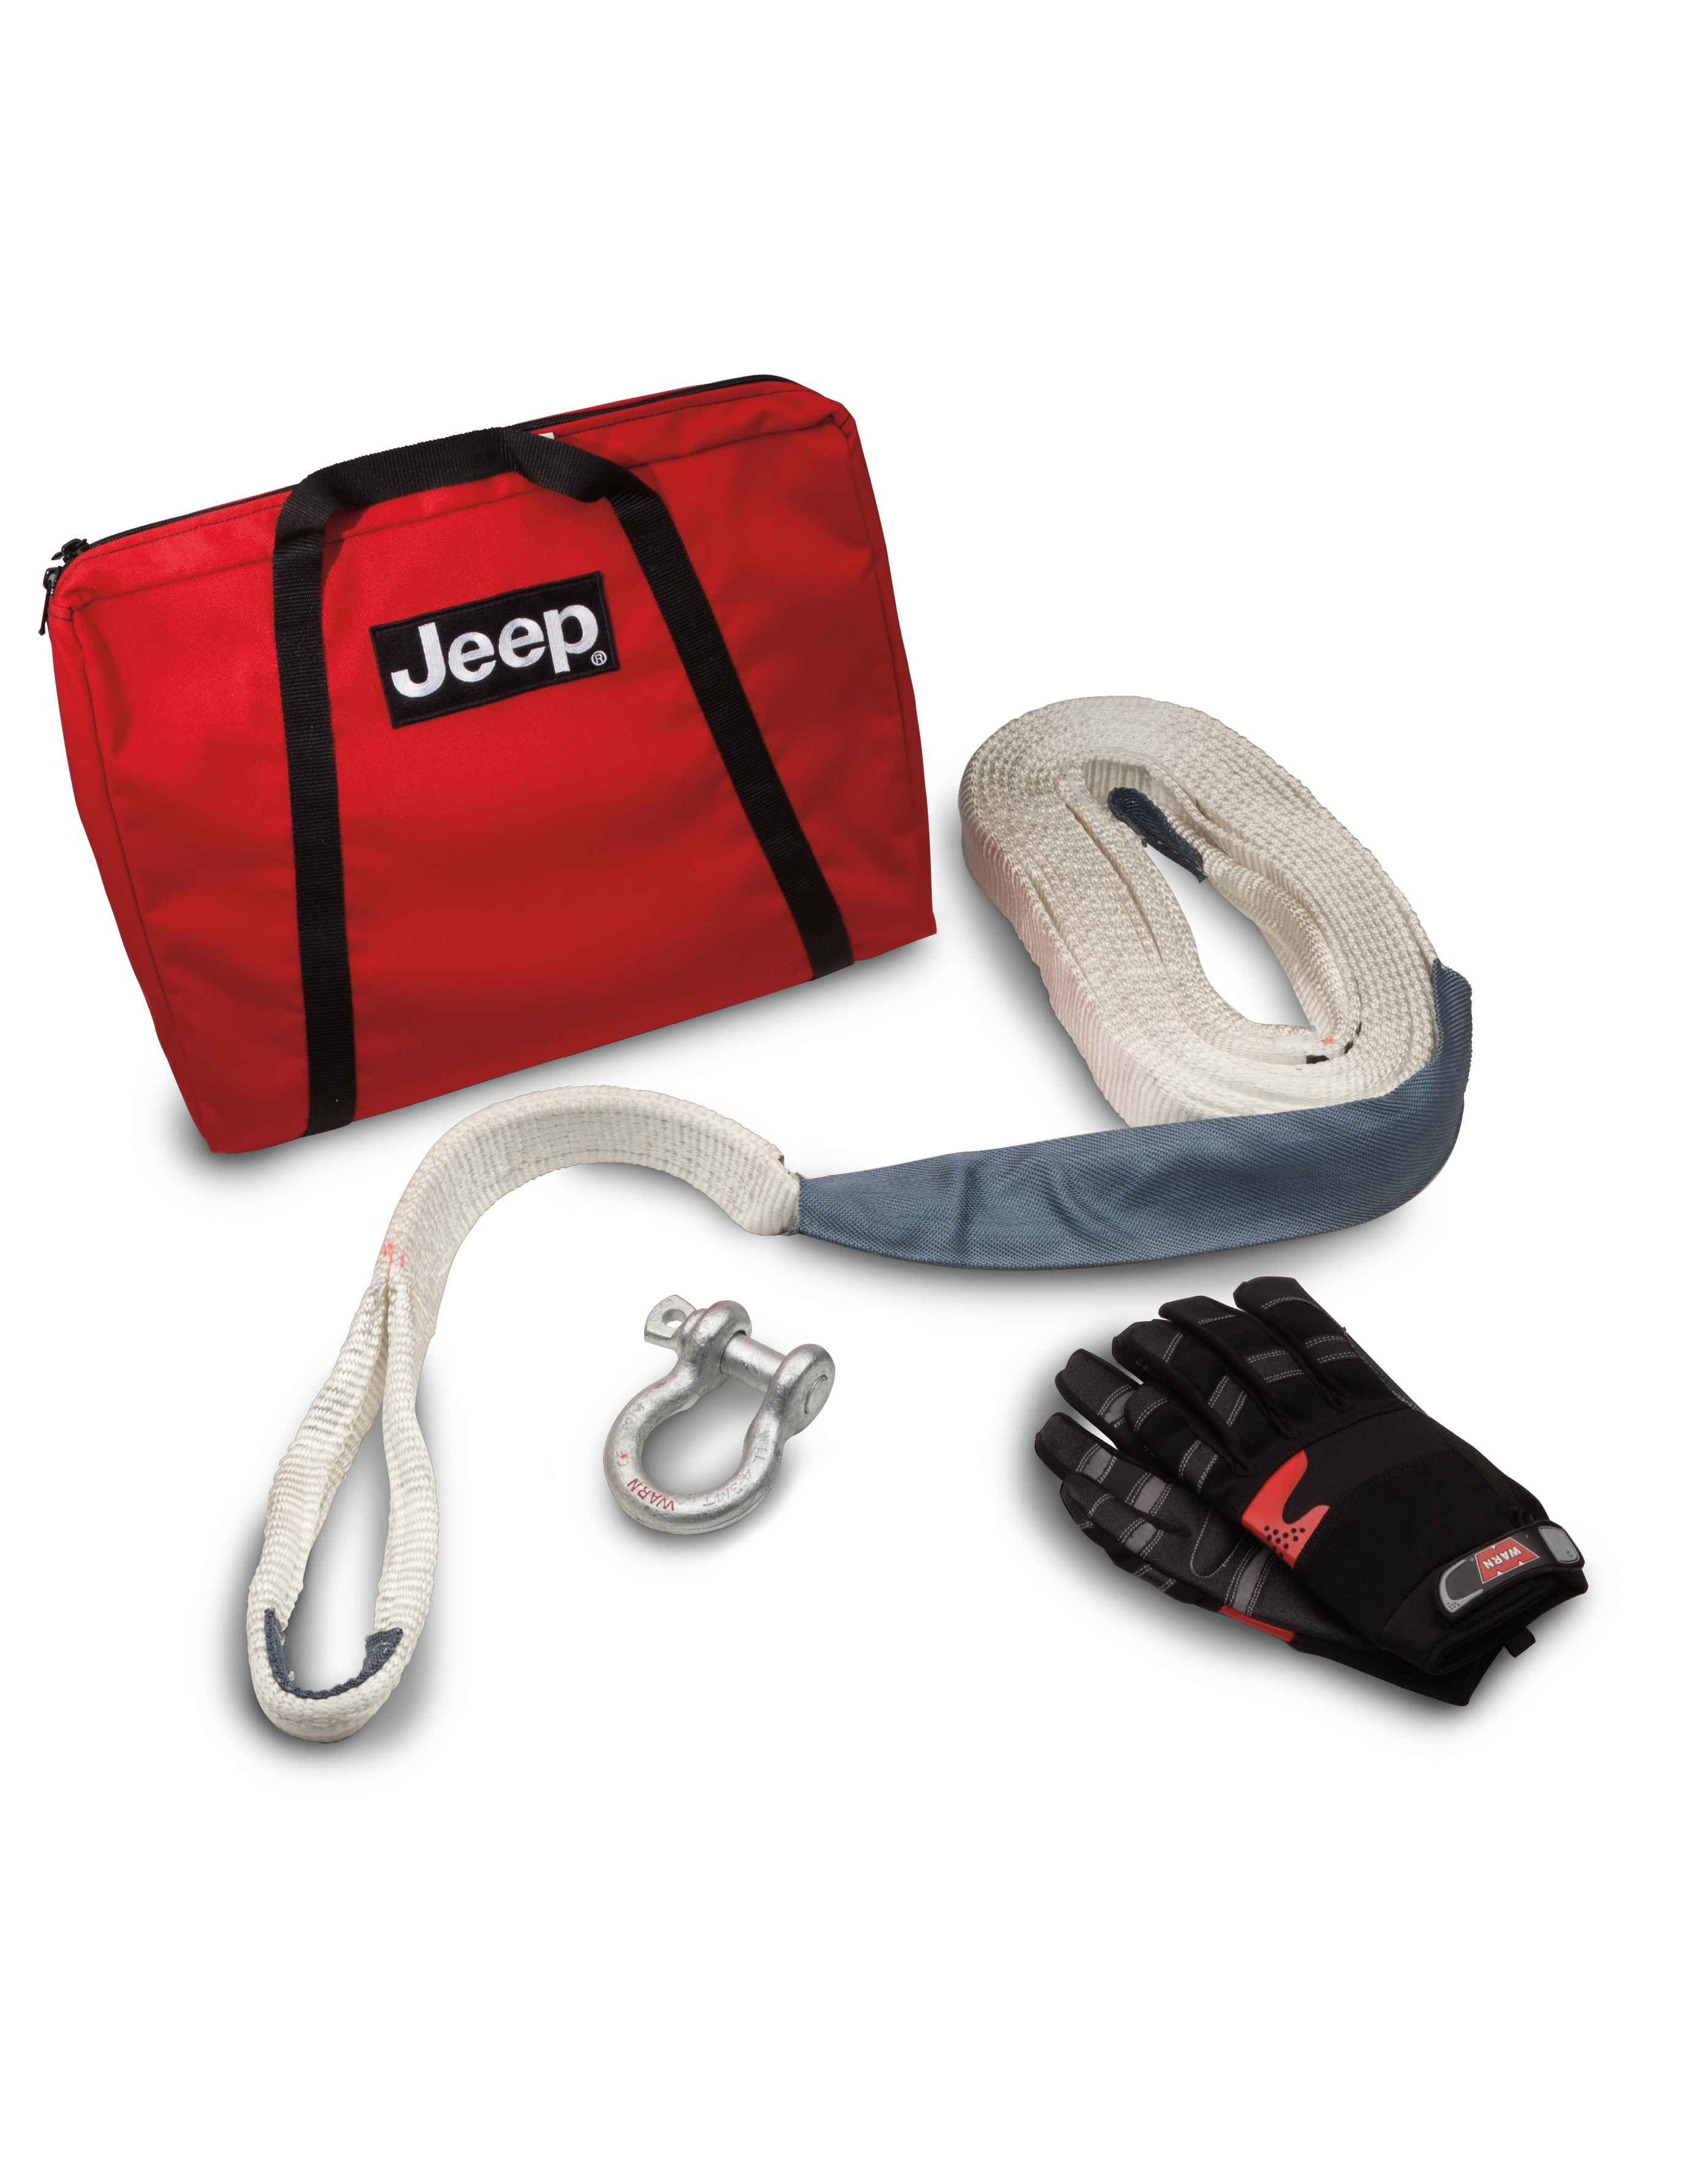 OEM 2013 Jeep Wrangler JK 2-Door Jeep® Trail Rated® Winch Accessory Kit (Part #82213901AD)